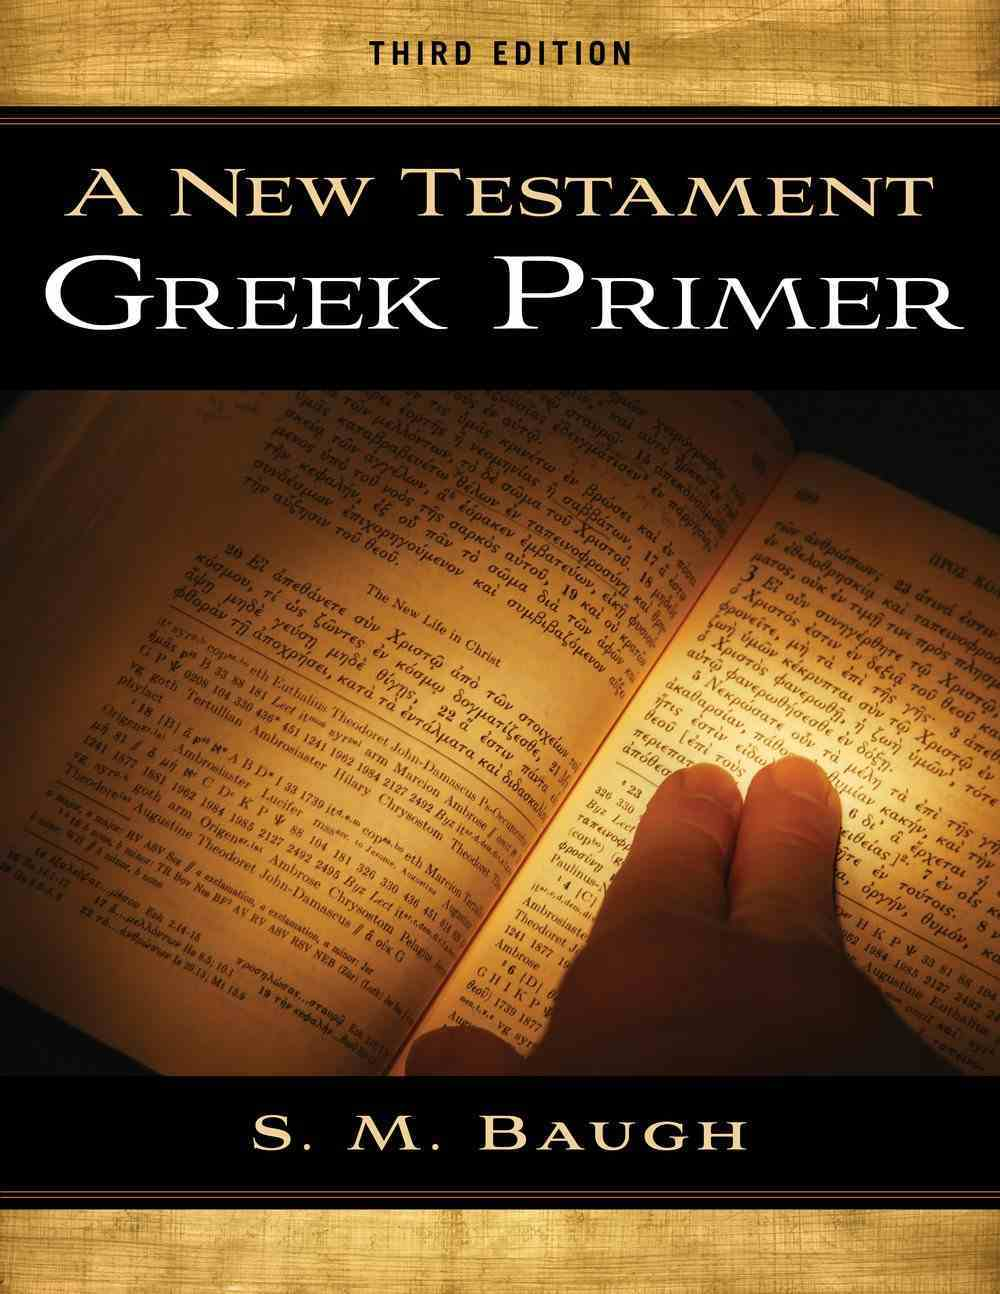 New Testament Greek Primer (3rd Edition) Paperback